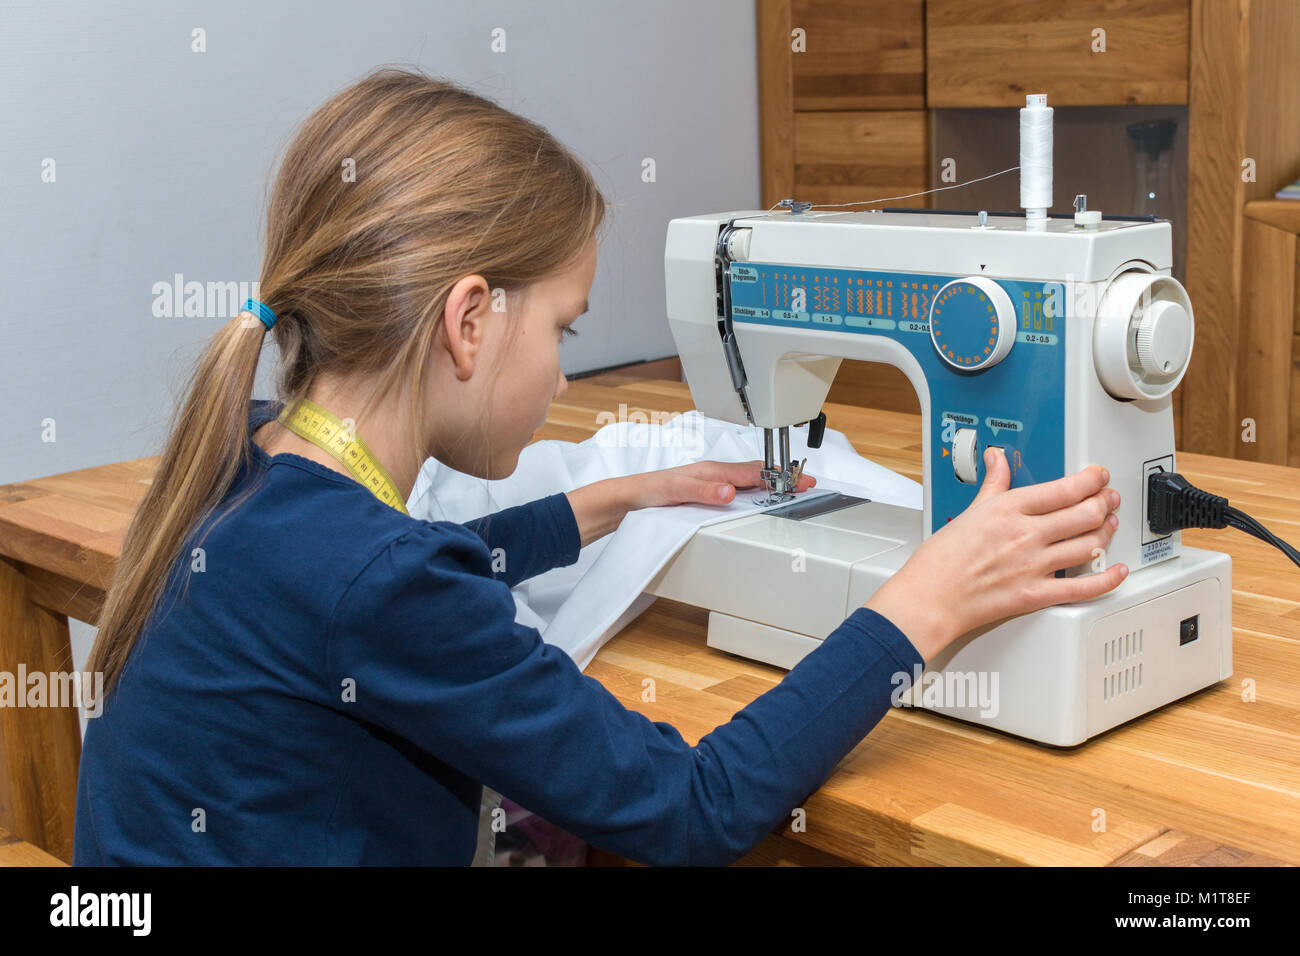 A 8 year old girl is sewing a white textile. Right hand presses the rewind button Stock Photo